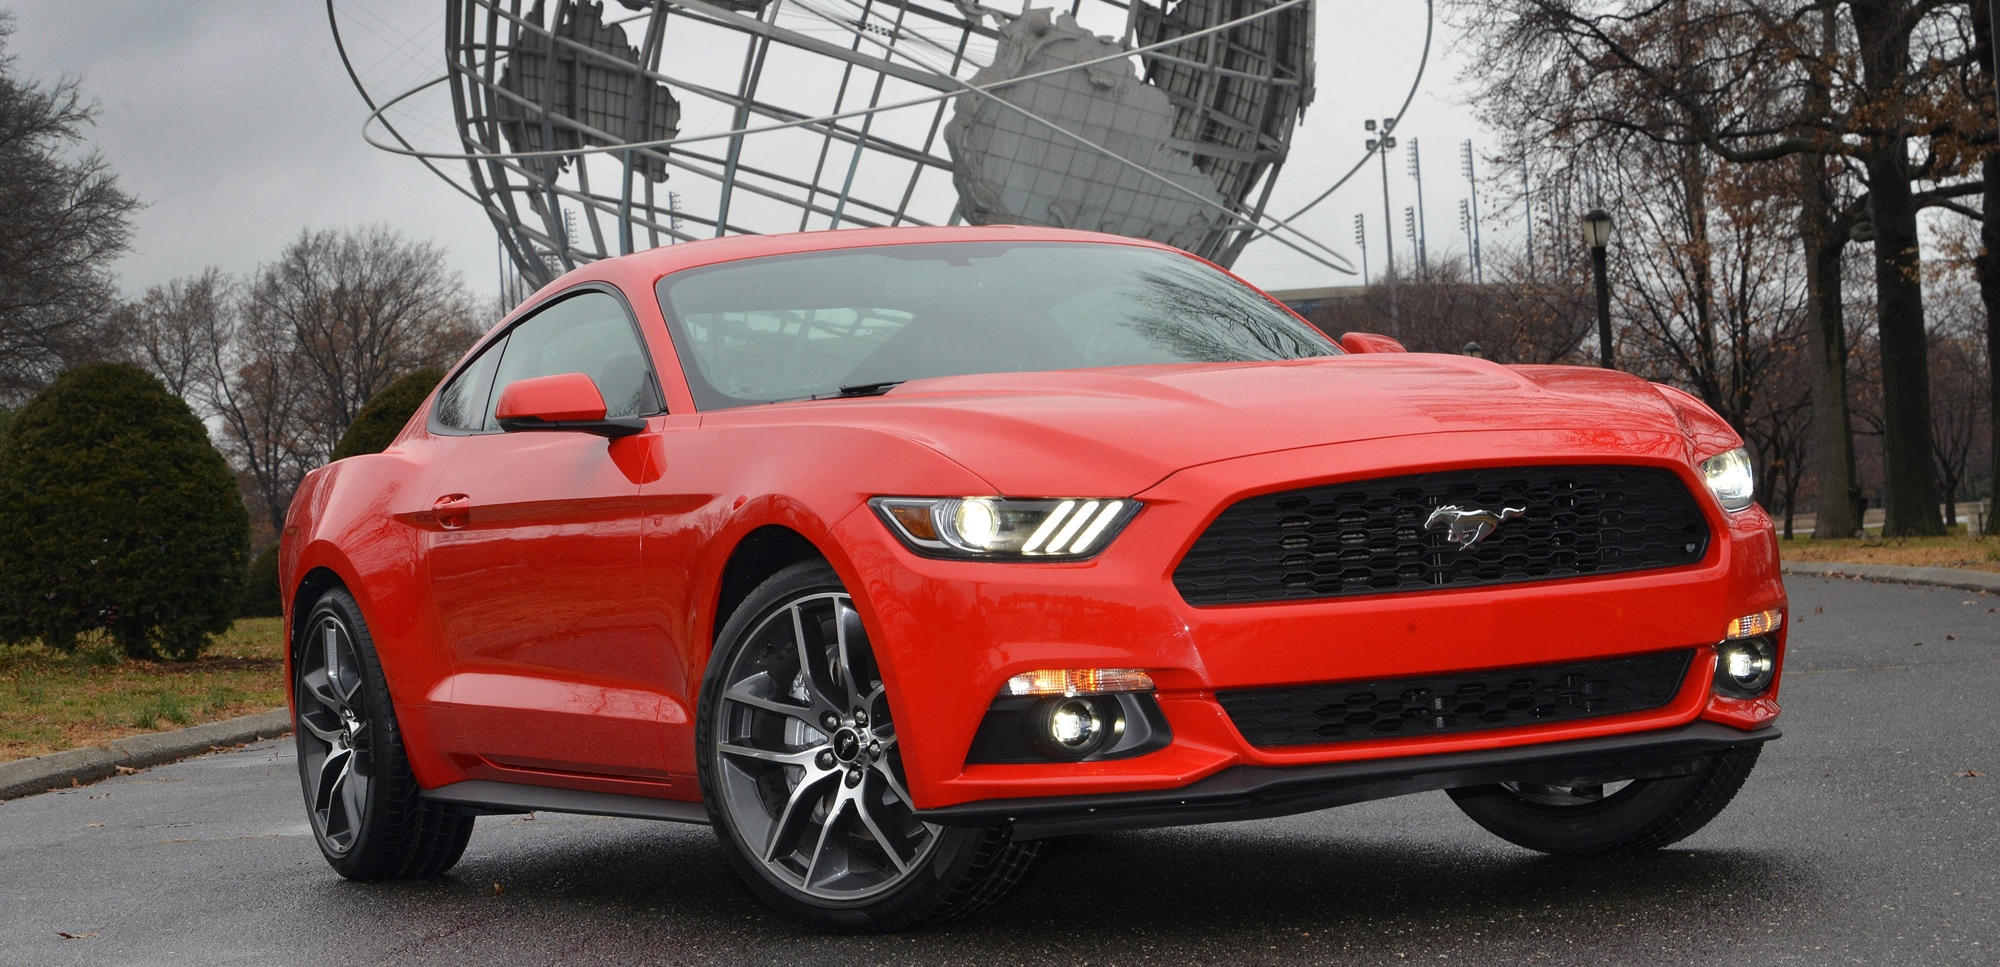 All-New Mustang at World's Fair site